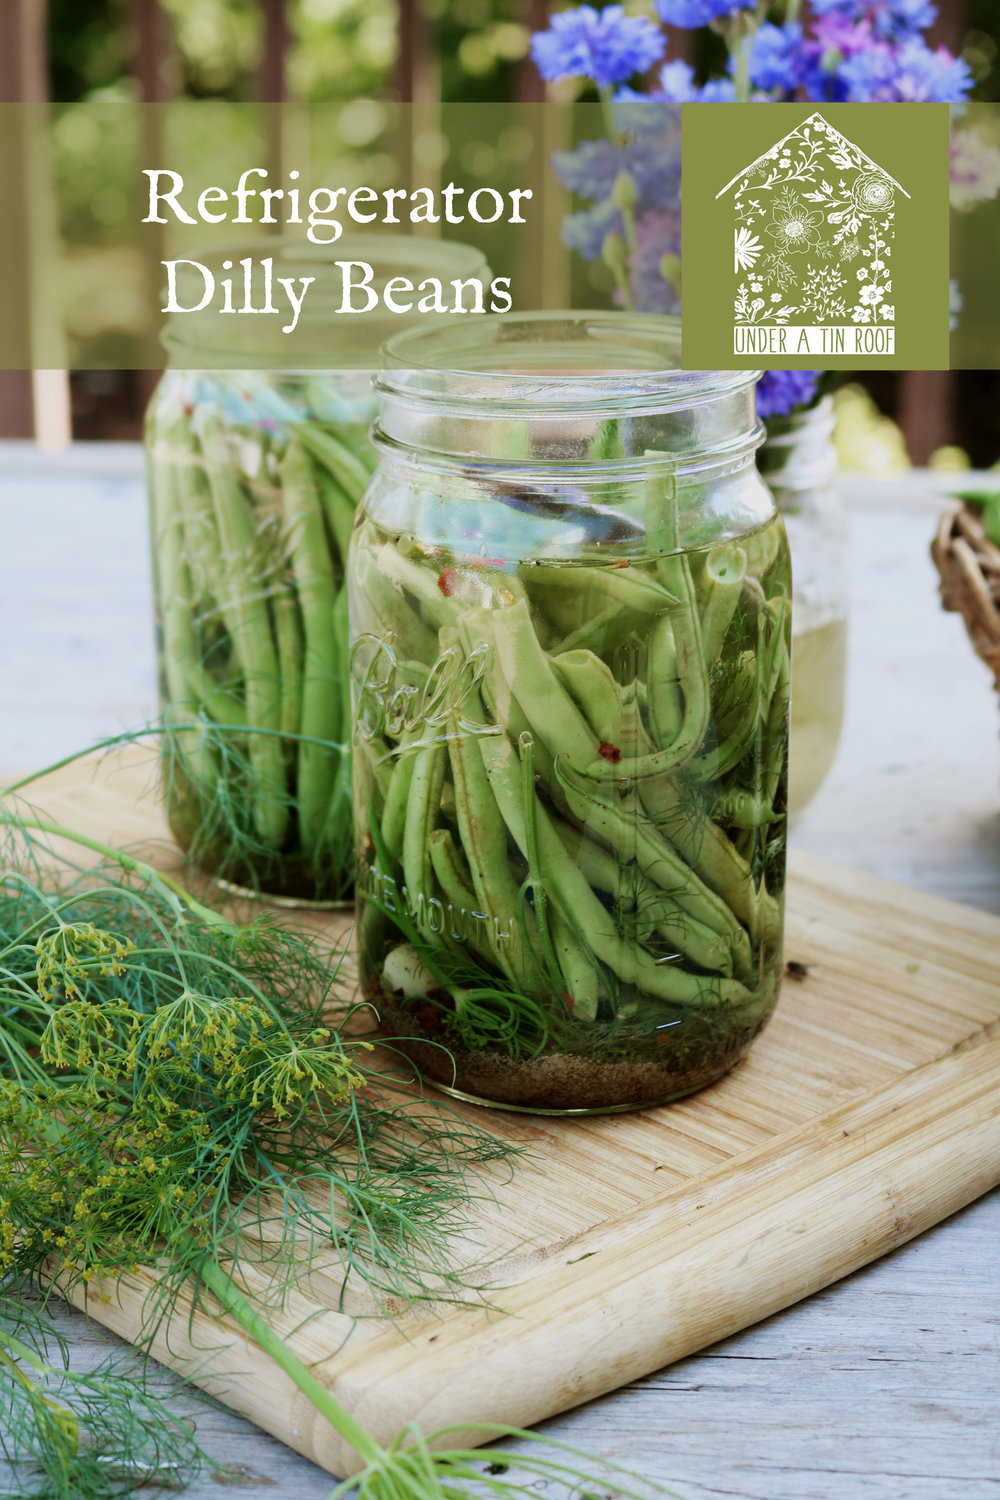 Refrigerator Dilly Beans - Under A Tin Roof Blog